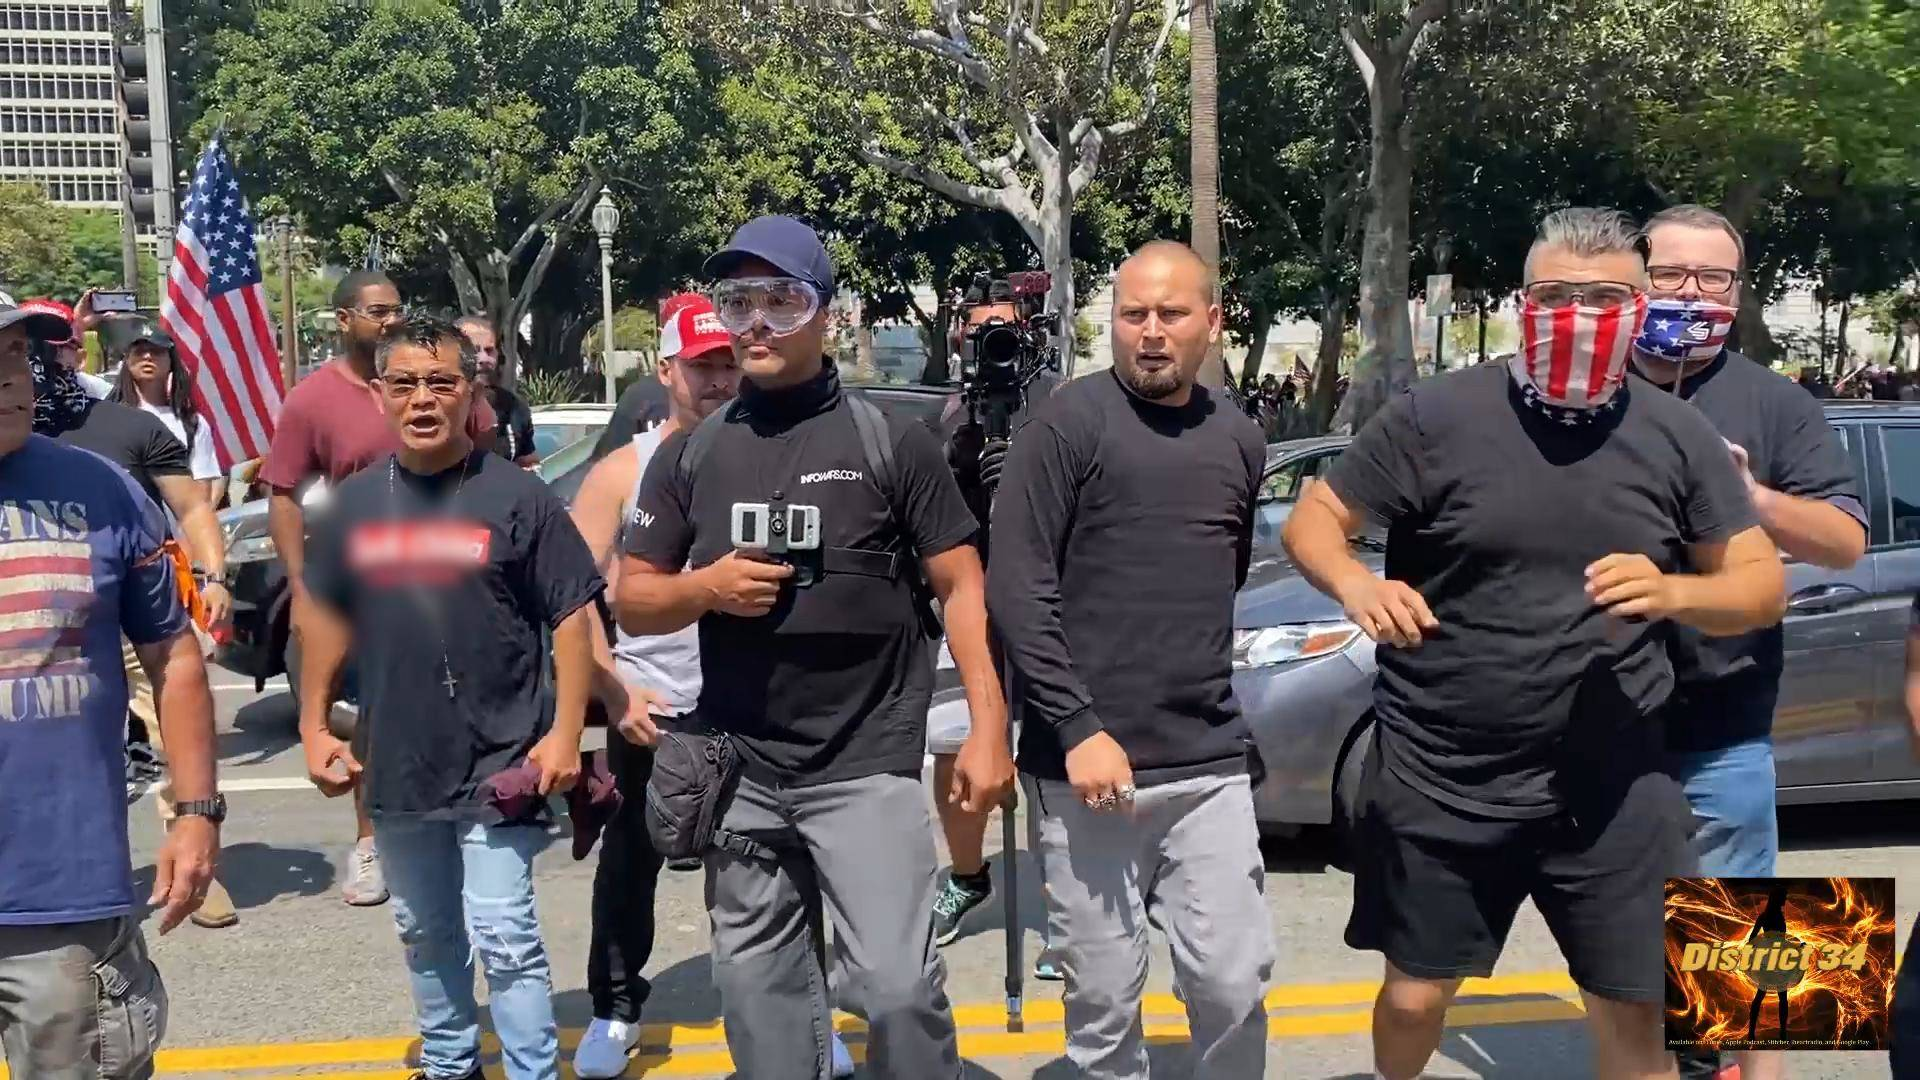 Read more about the article Proud Boys & Far-Right Groups Tied to Jan. 6 Attack Reporters & Others at Anti-Mask, Anti-Vax Rally